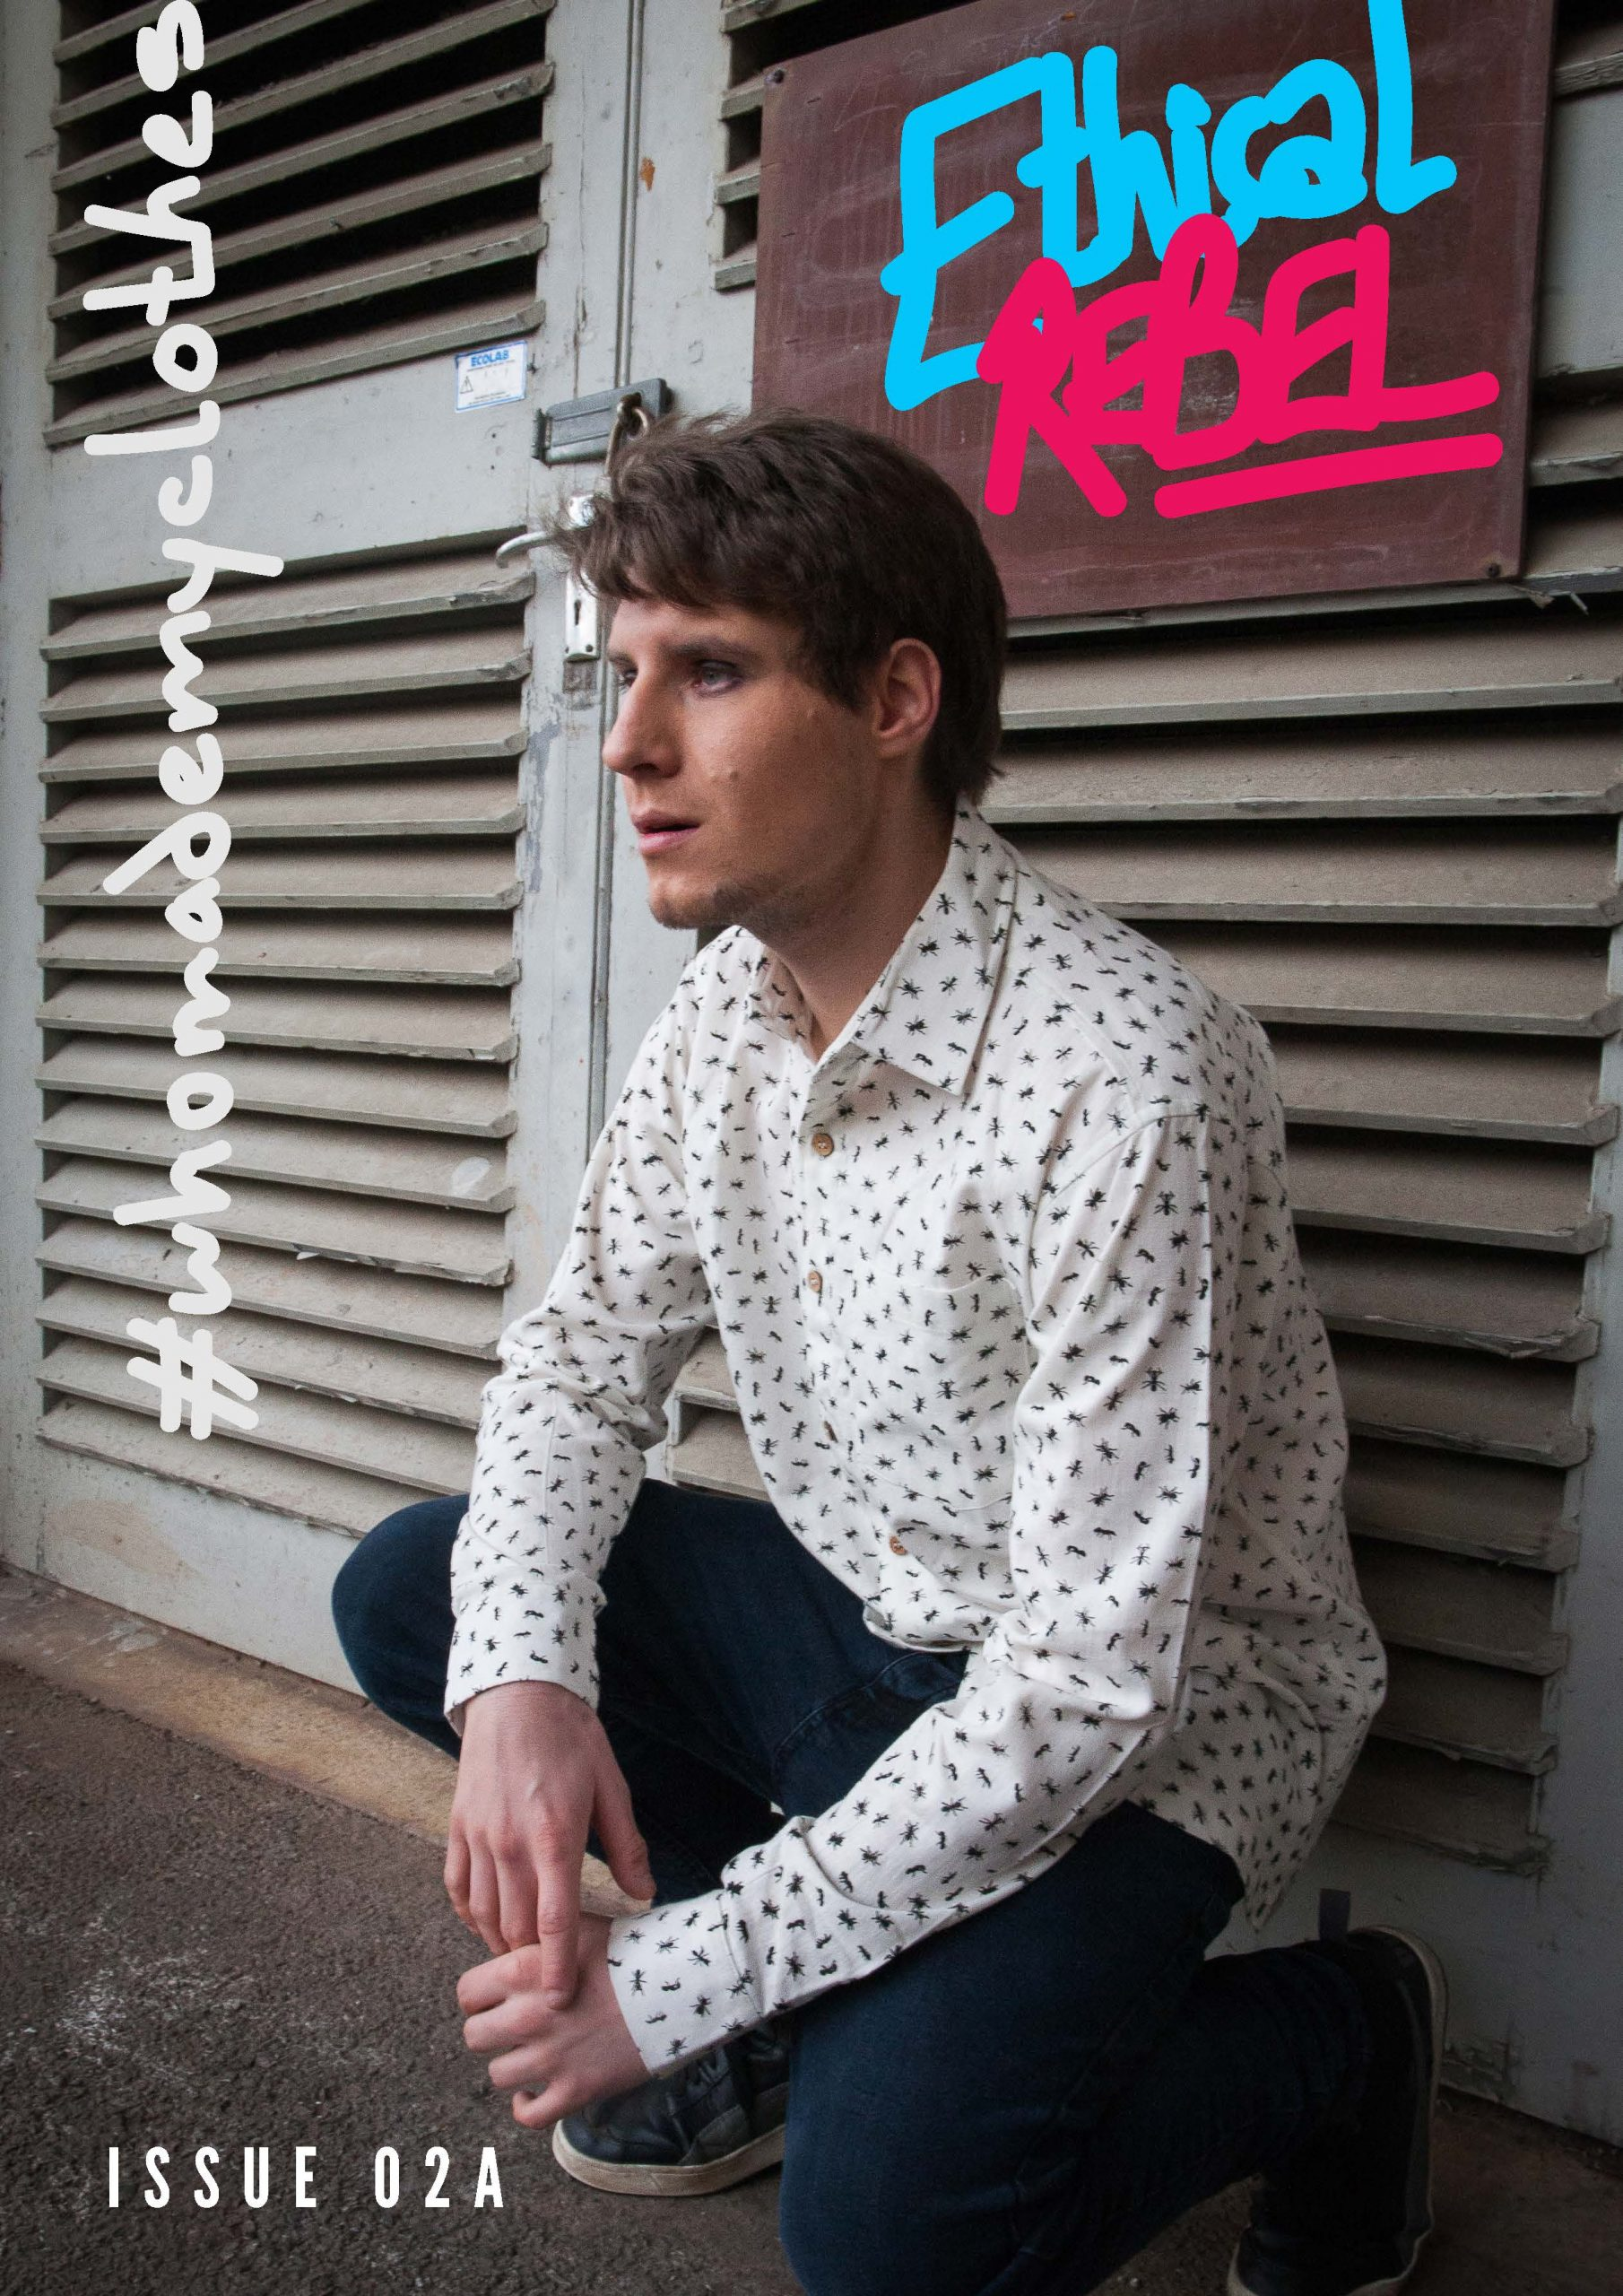 Cover of Ethical Rebel magazine